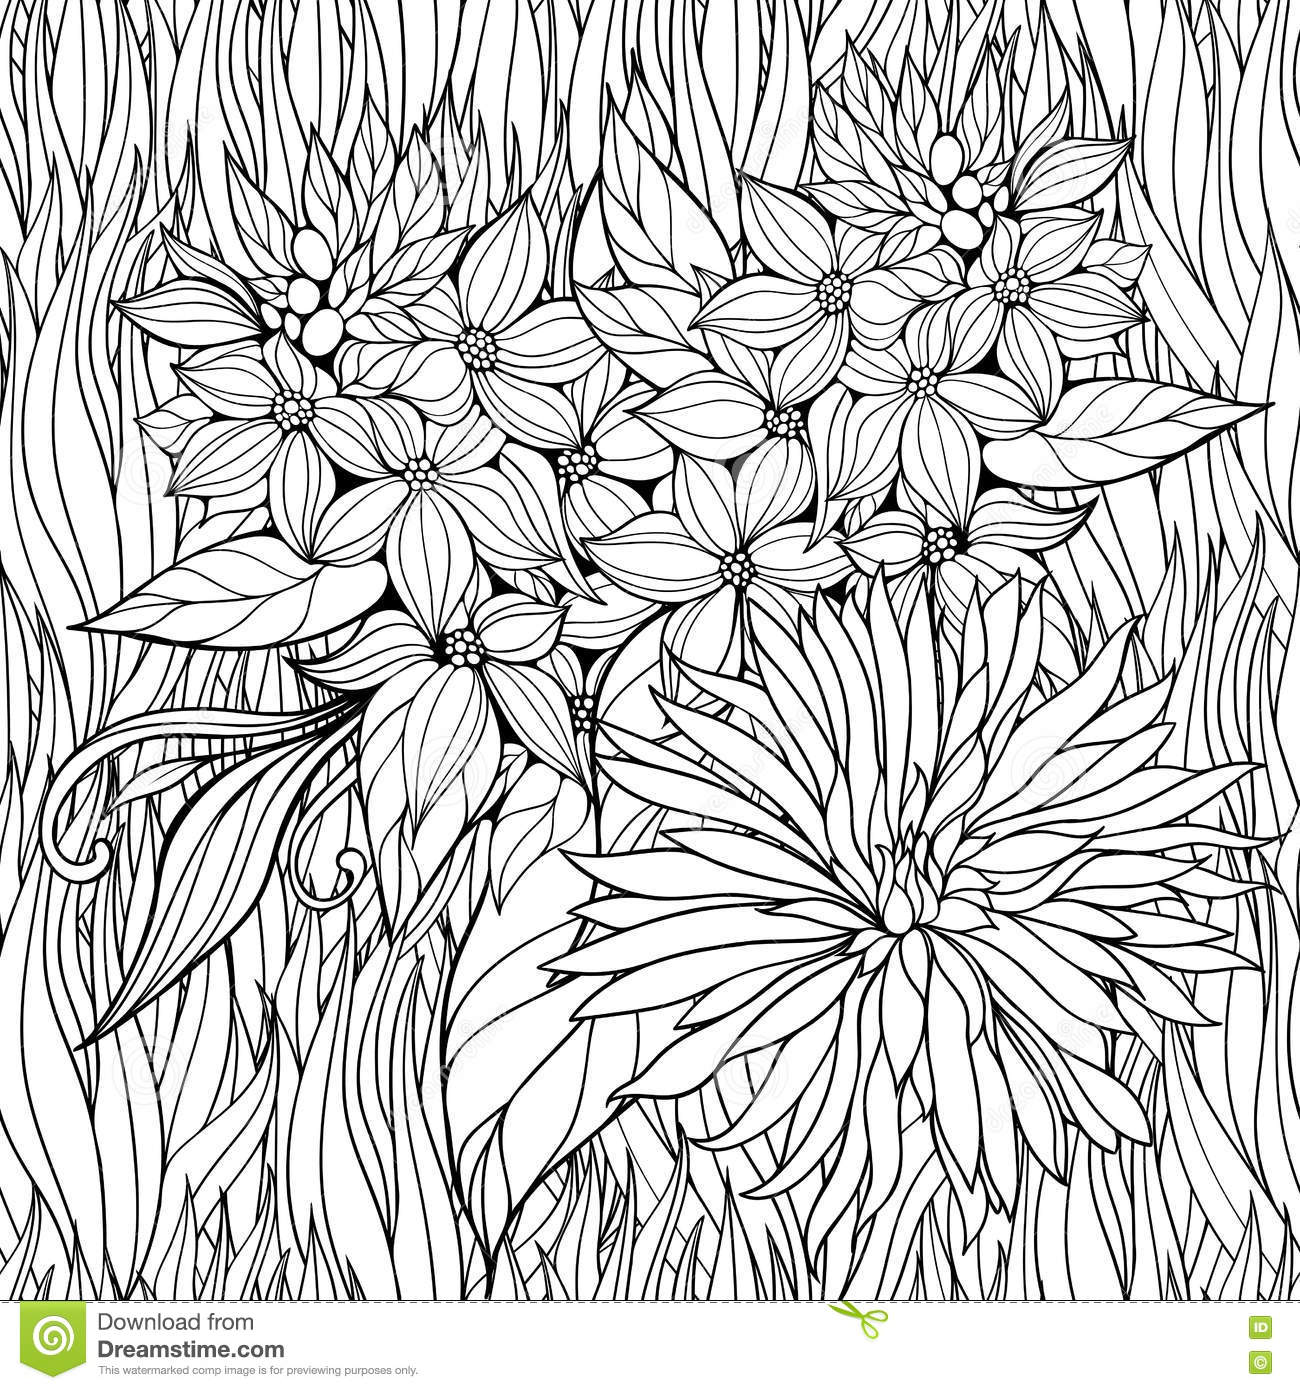 coloring page with flowers in a grass stock vector image 72270902